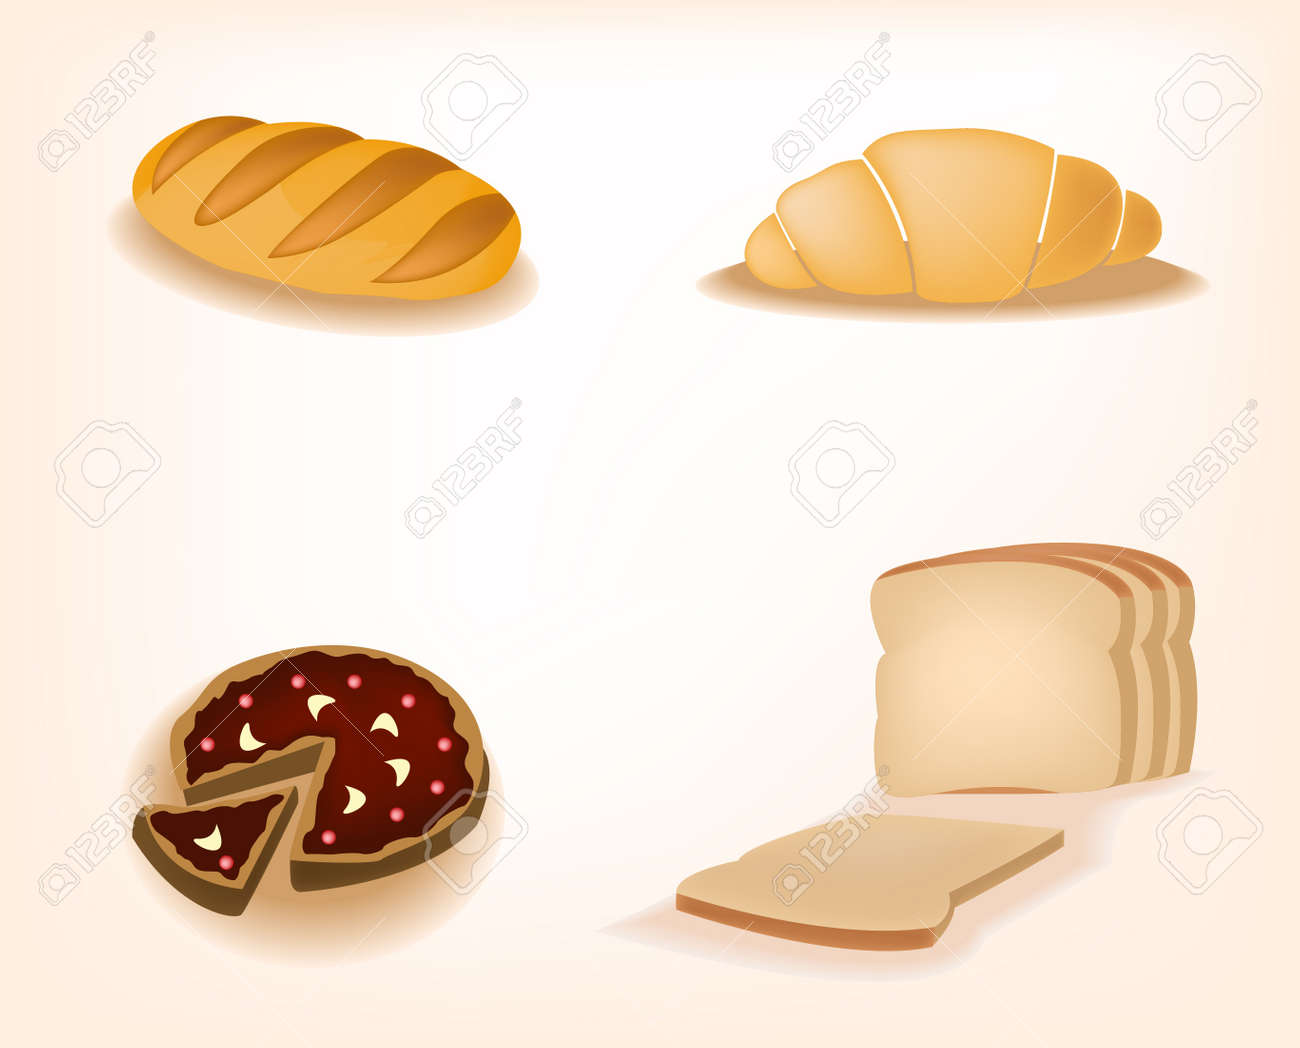 Vrctor clipart - cakes. Abstract background Stock Vector - 17031850